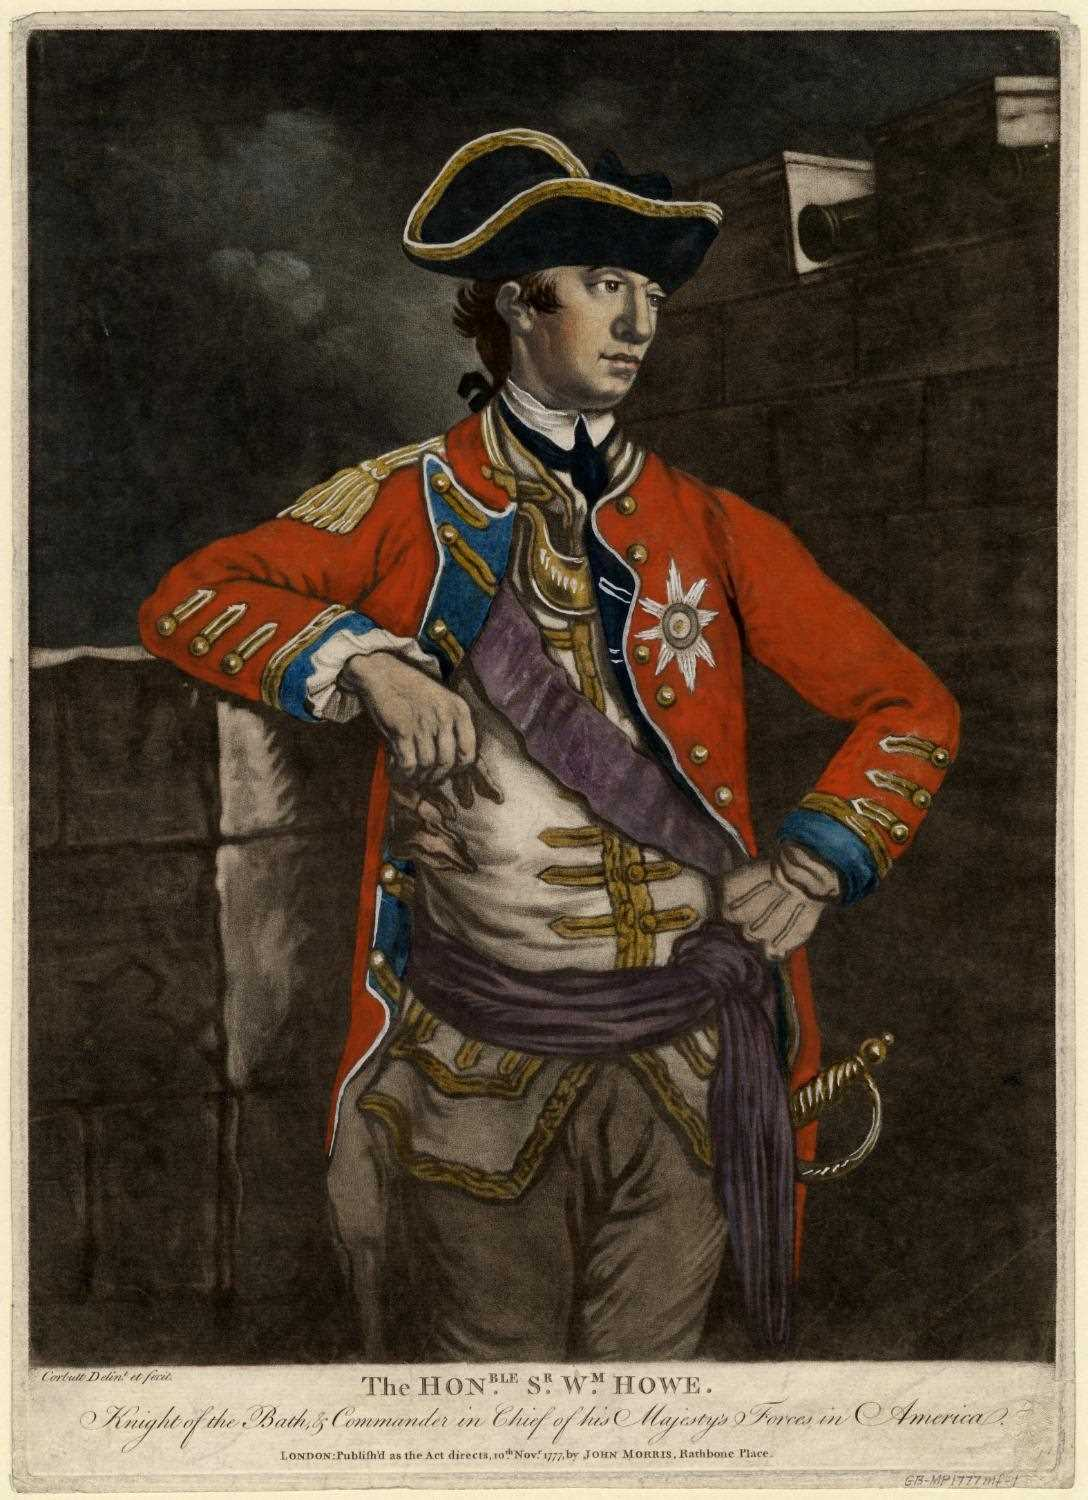 General William Howe, 1777